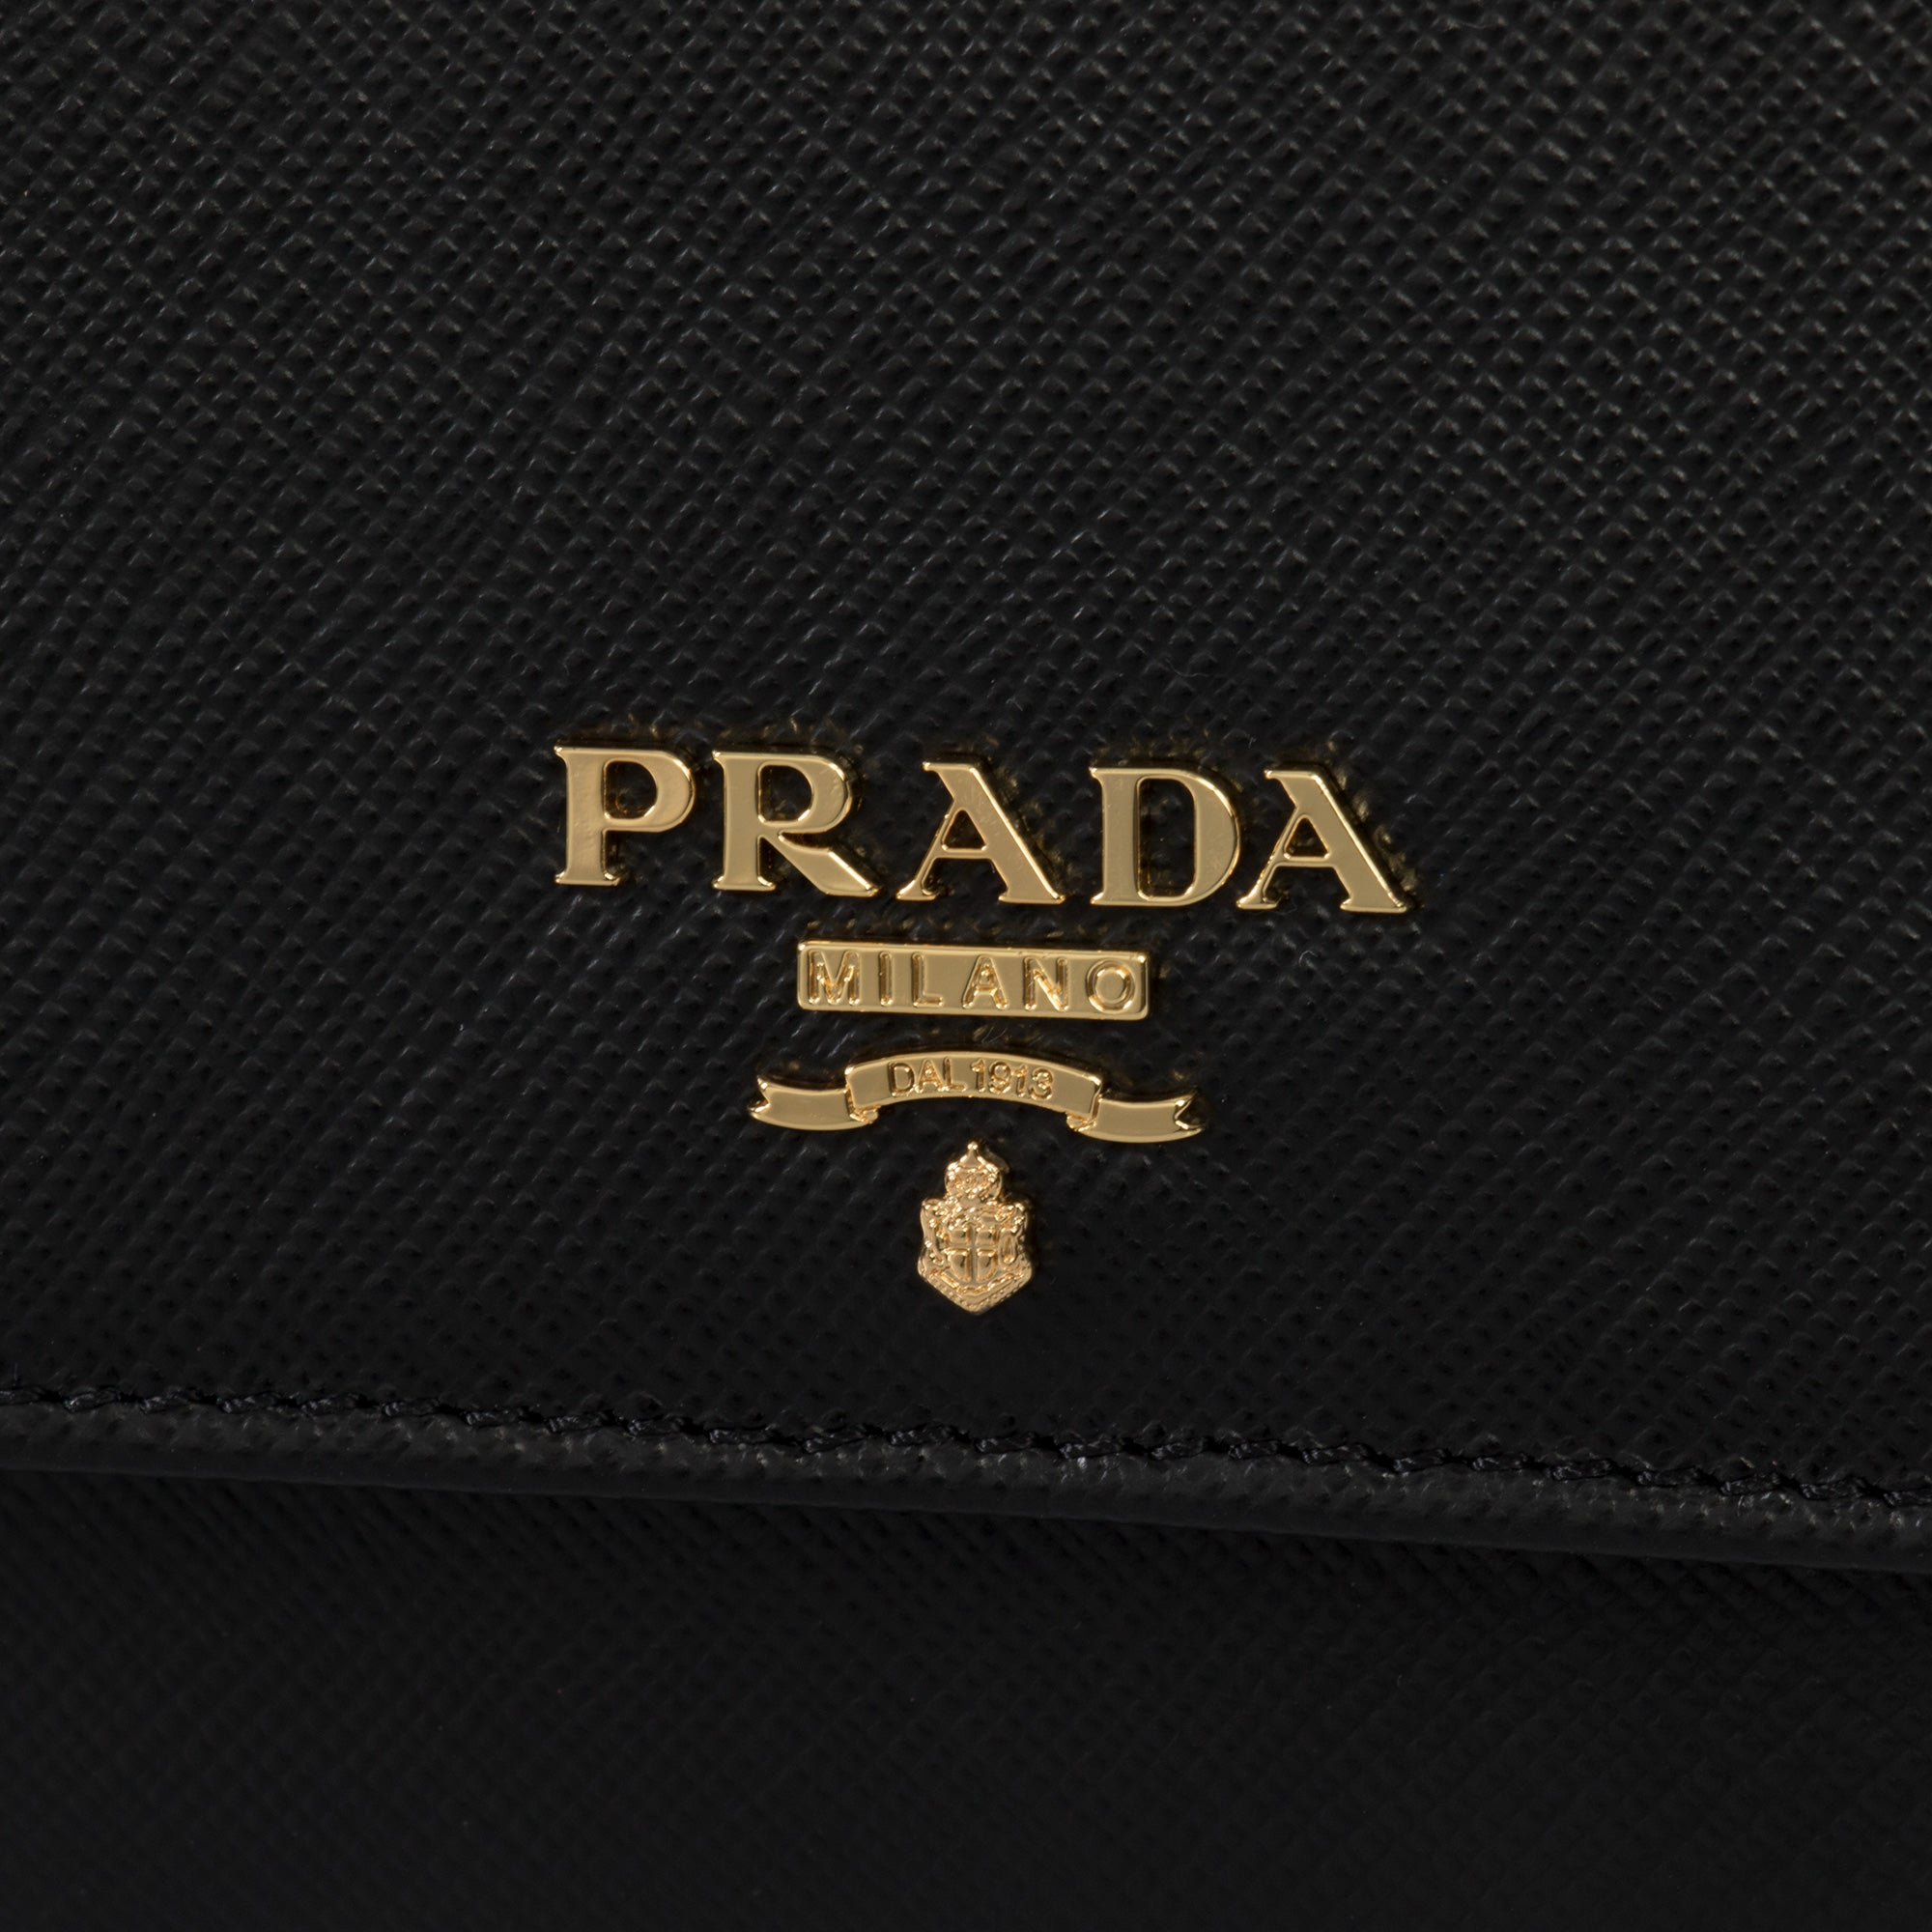 Prada Black Saffiano Leather Flap Wallet 1MH523 QWA F0002